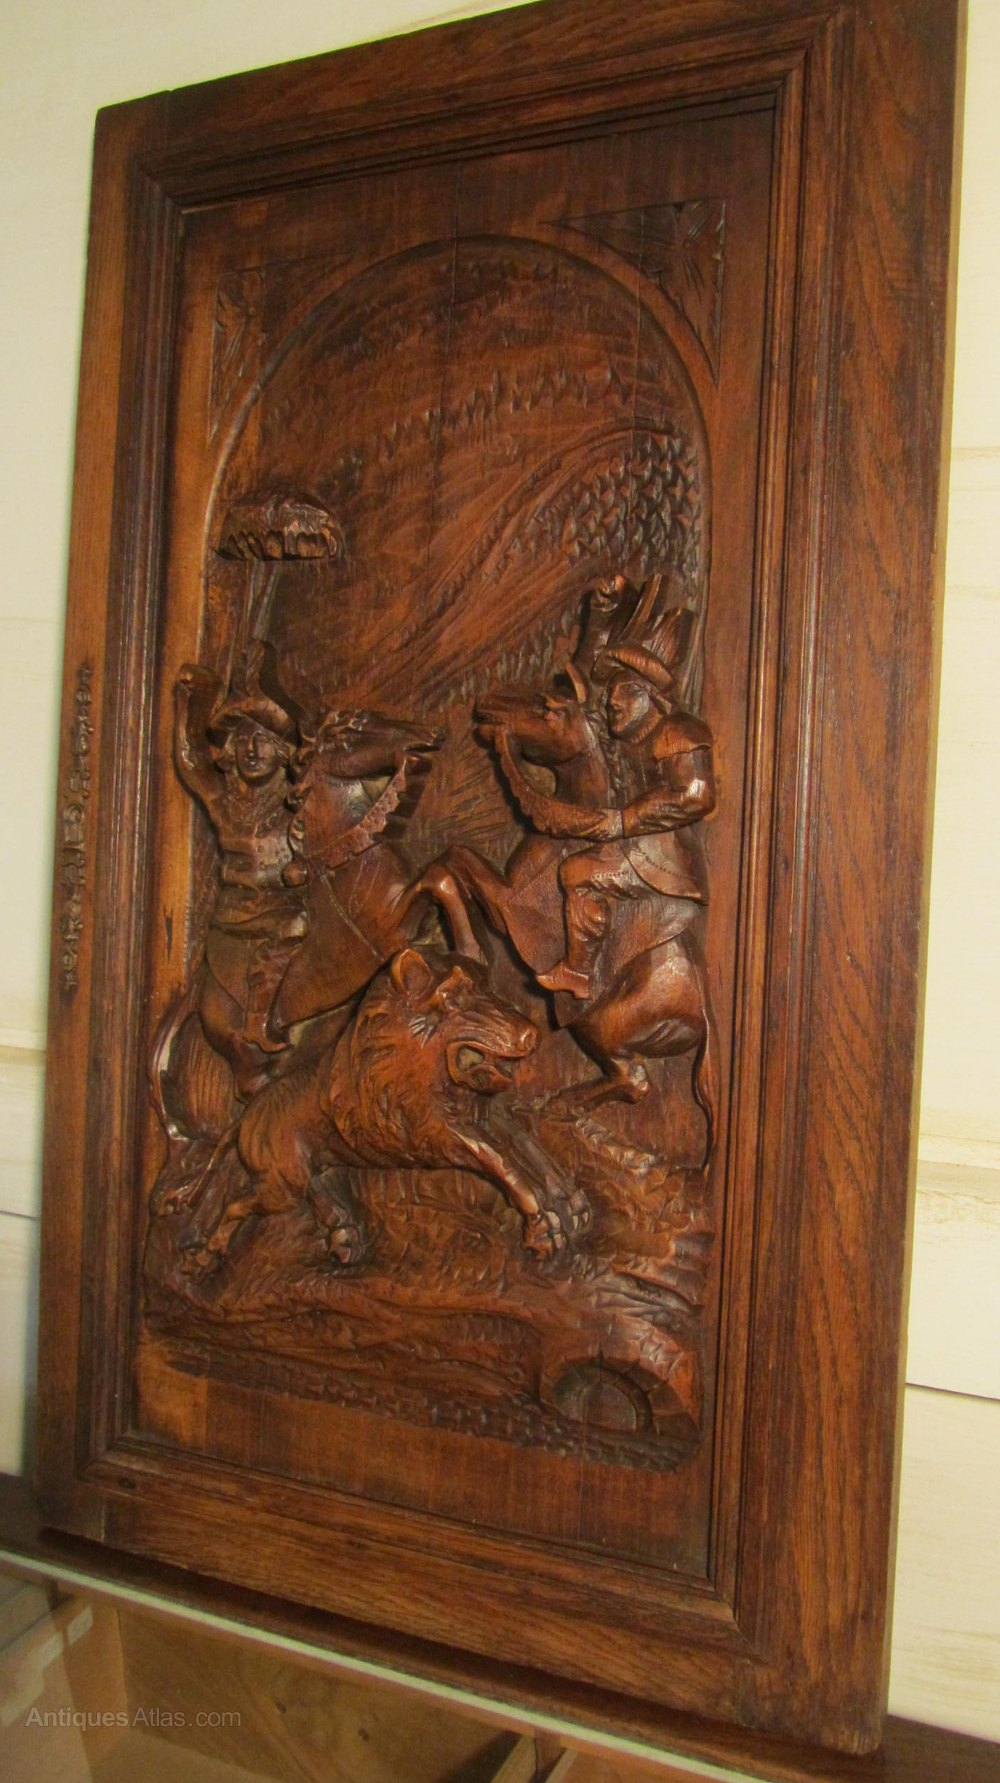 Antiques atlas a superbly carved oak door panel